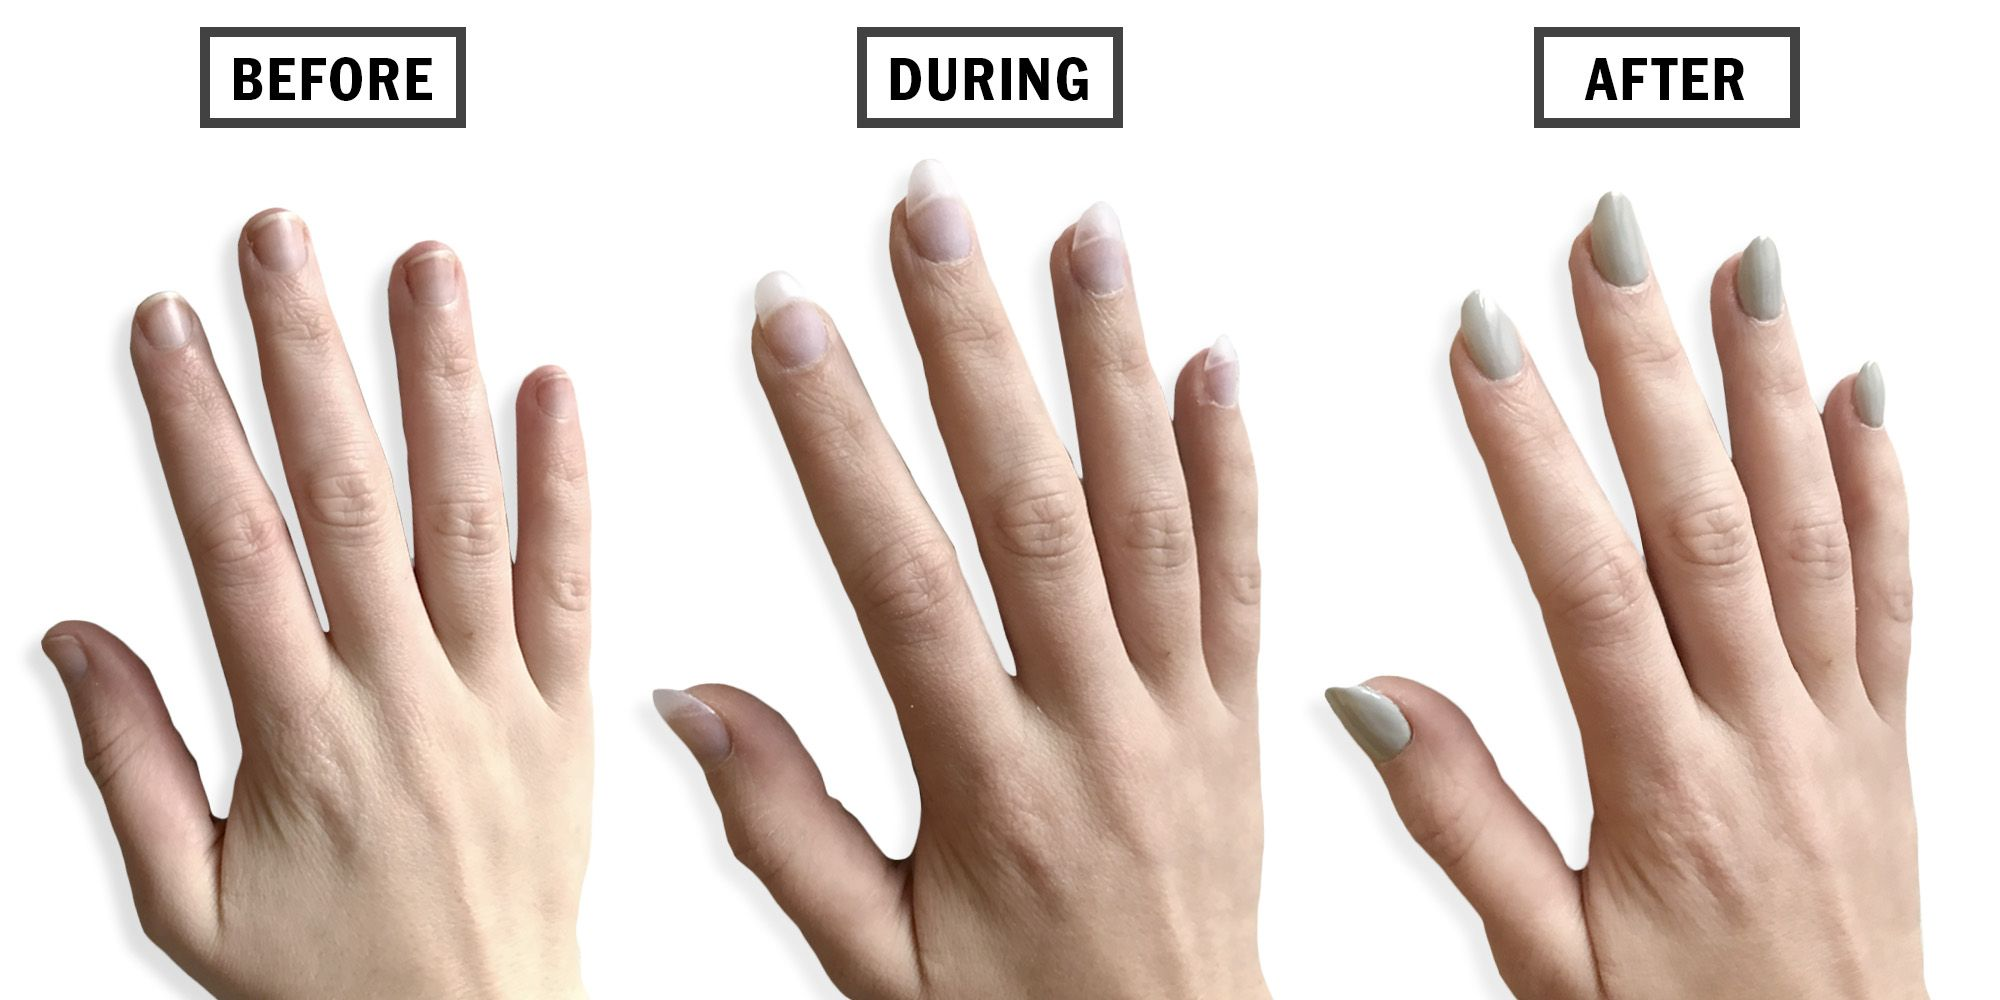 Nail Extensions Before and After - Nail Biting Tricks